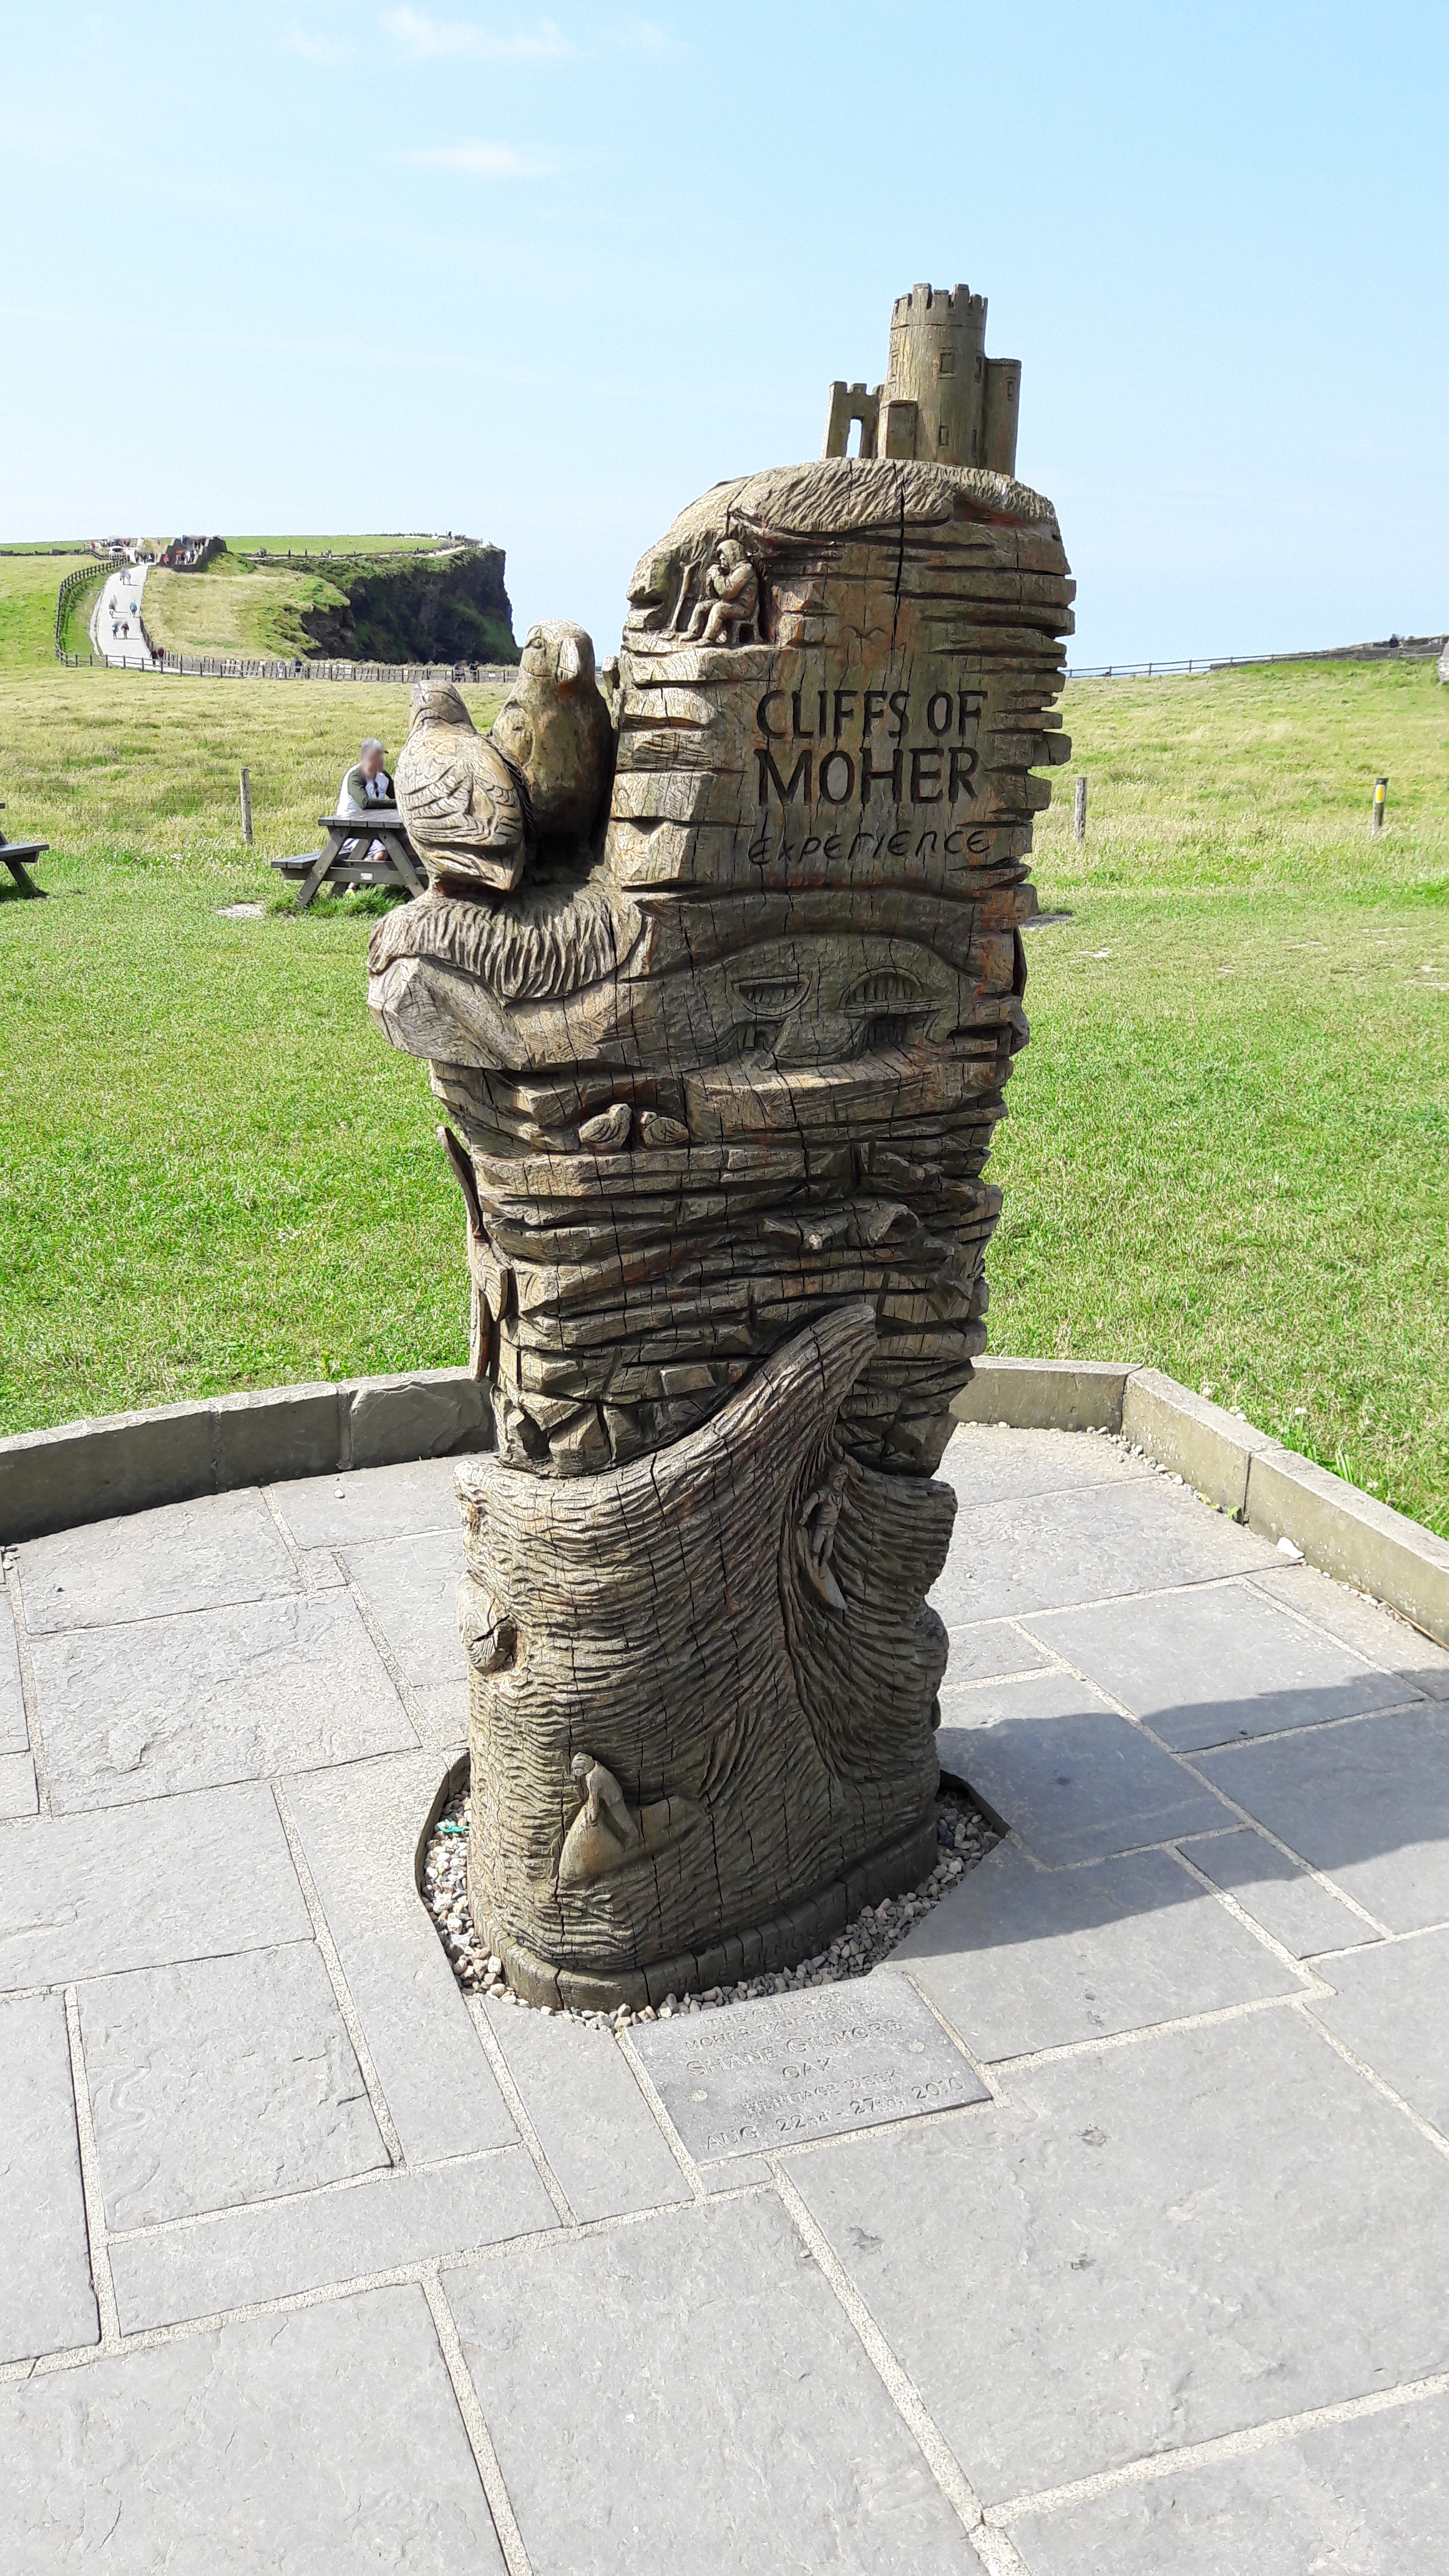 Cliffs of Moher Statue